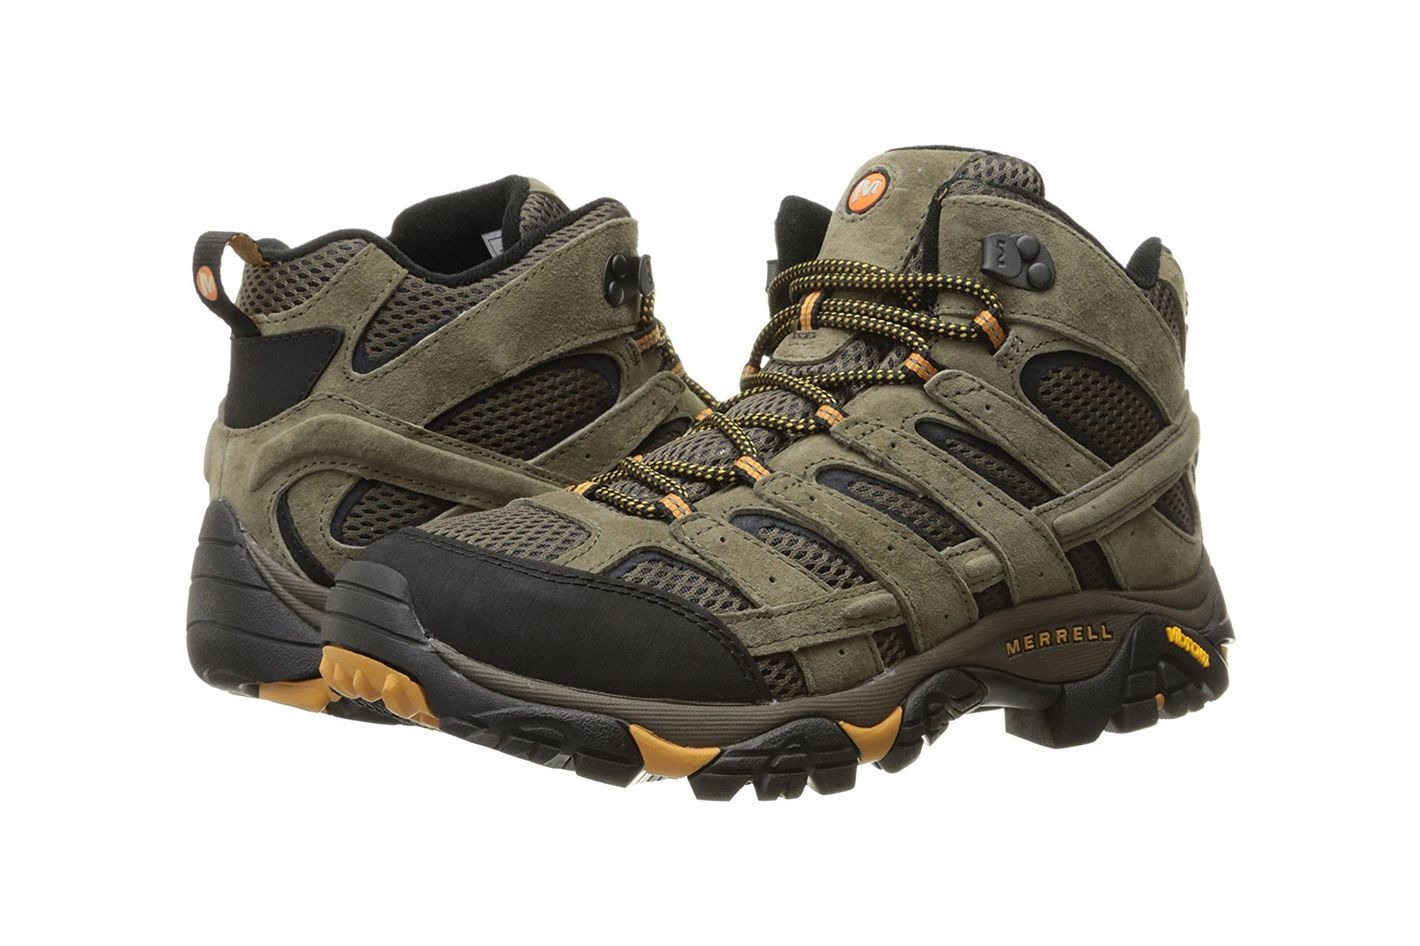 3923b653af3a8 12 Best Hiking Boots for Men 2019